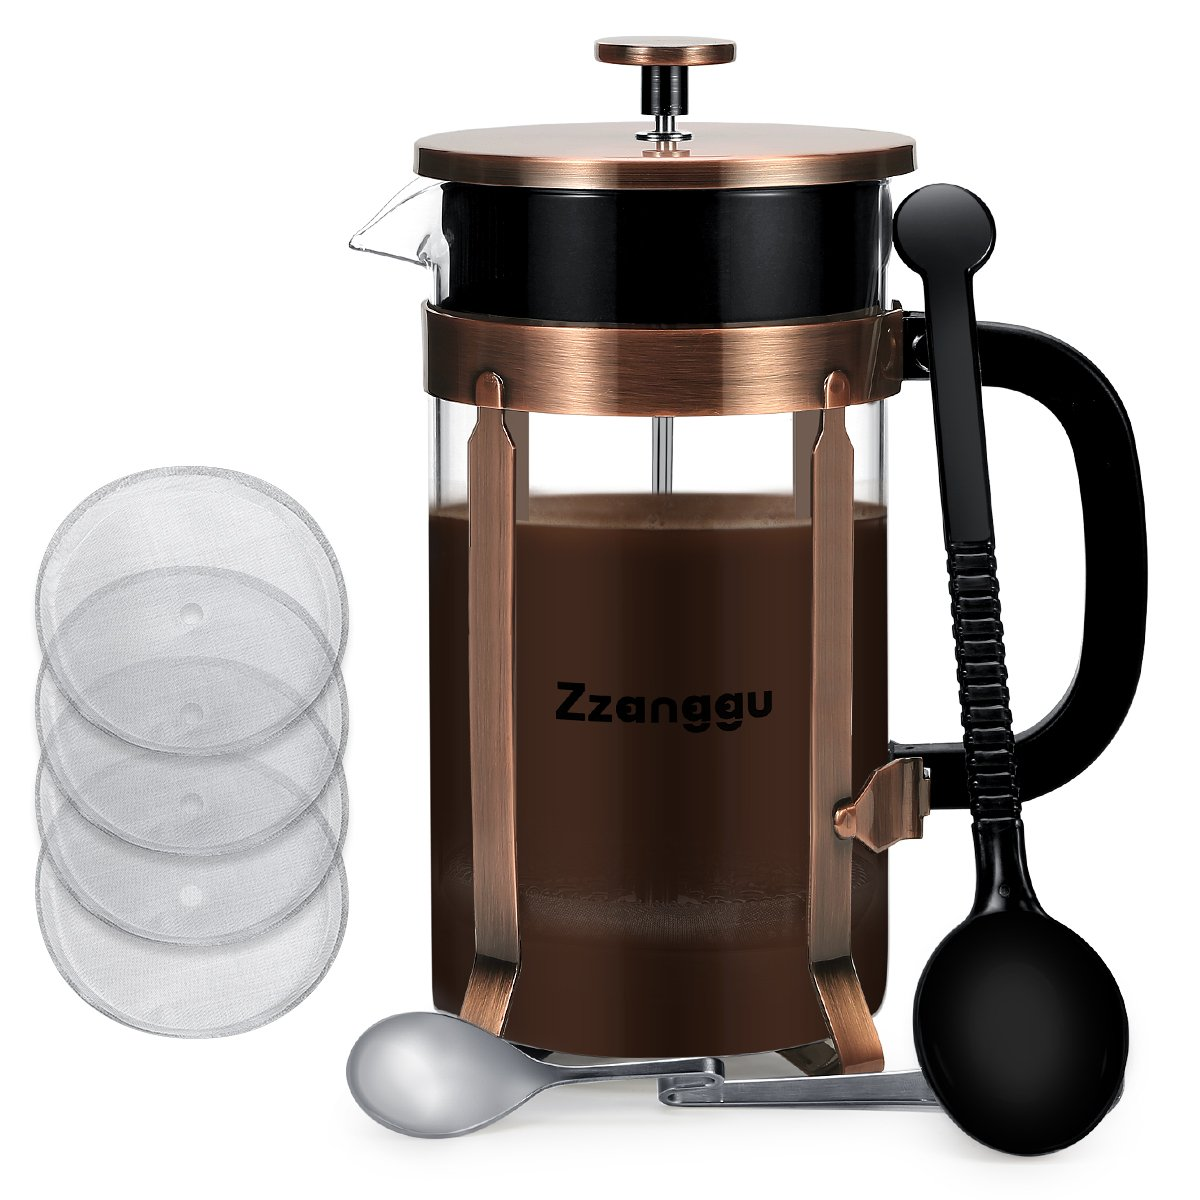 Zzanggu French Press Coffee Maker Tea Pot, Heat Retention Double Wall Glass Beaker and Stainless Steel Filter (8 Cup, 34OZ, 1L) for Coffee Tea Press Maker, Bronze